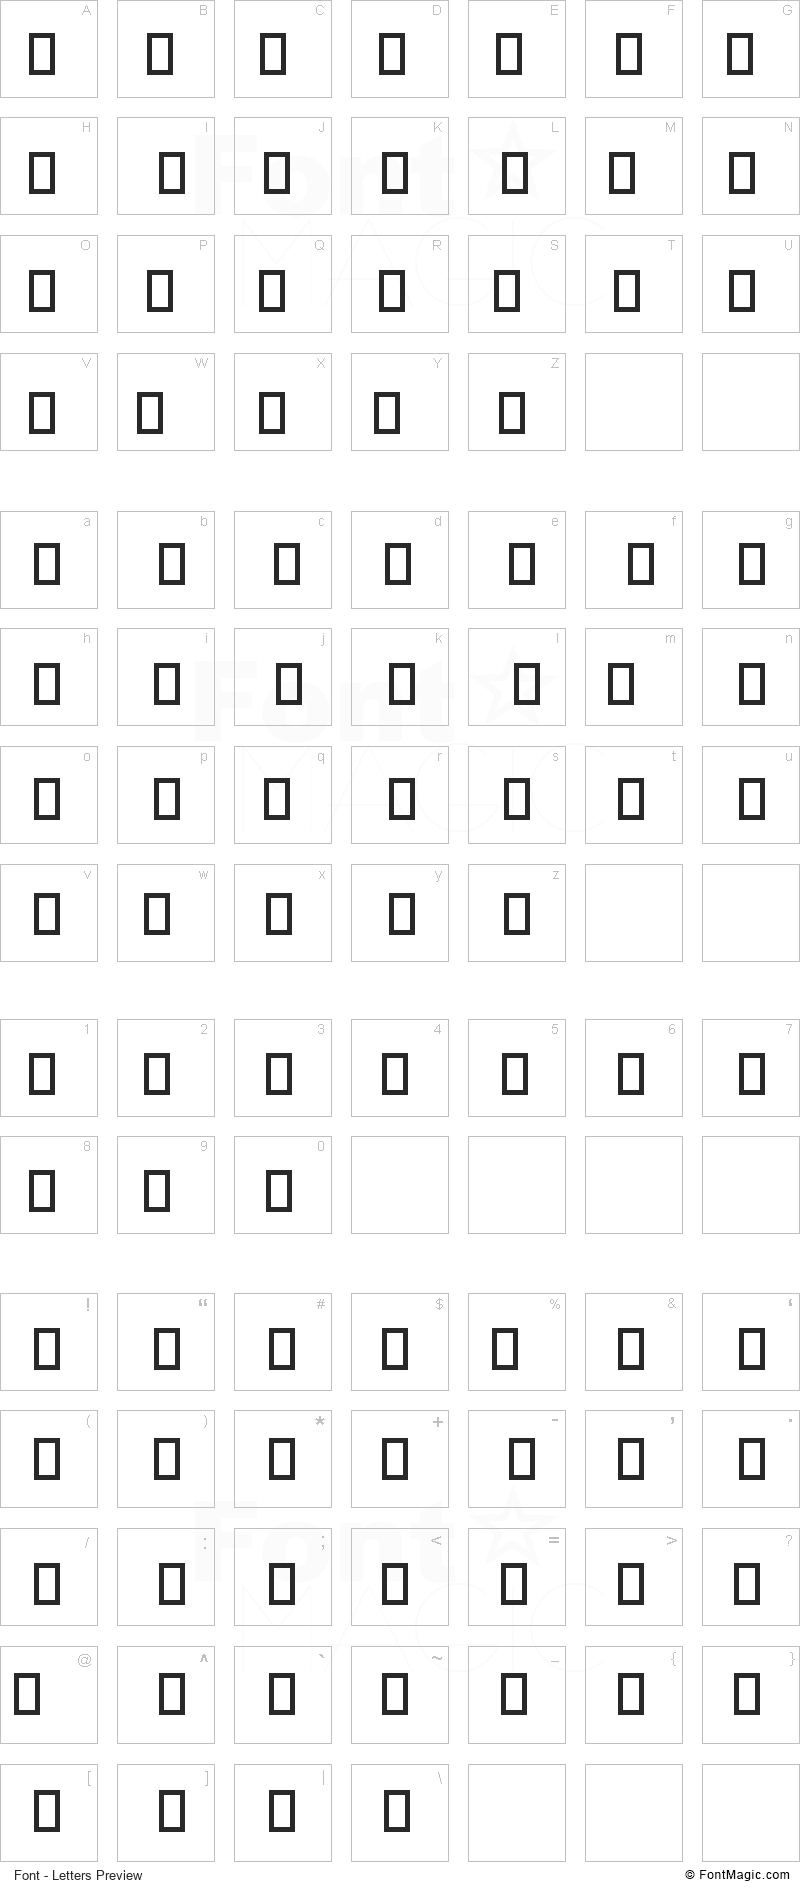 Cursors Font - All Latters Preview Chart